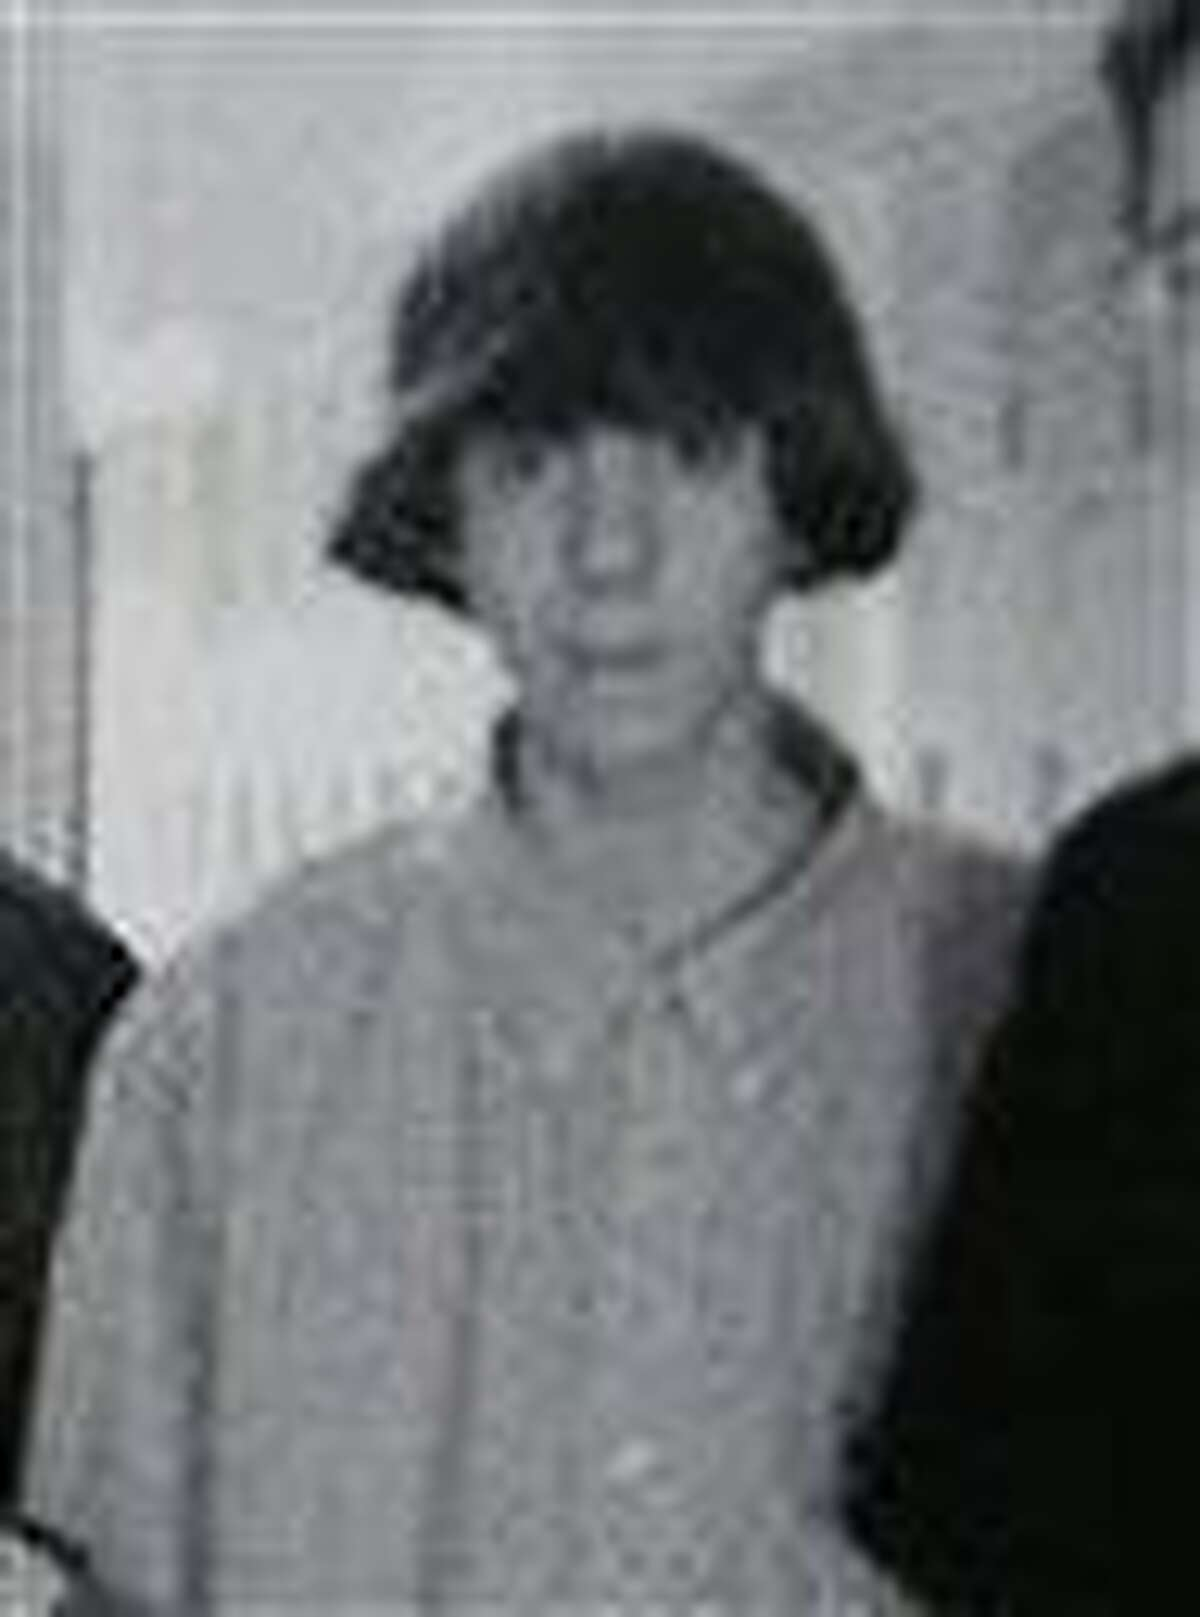 This undated photo shows Adam Lanza posing for a group photo of the technology club which appeared in the Newtown High School yearbook. Authorities have identified Lanza as the gunman who killed his mother at their home and then opened fire Friday, Dec. 14, 2012, inside an elementary school in Newtown, Conn., killing 26 people, including 20 children, before killing himself. Richard Novia, a one-time adviser to the technology club, verified that the photo shows Lanza. (AP Photo)